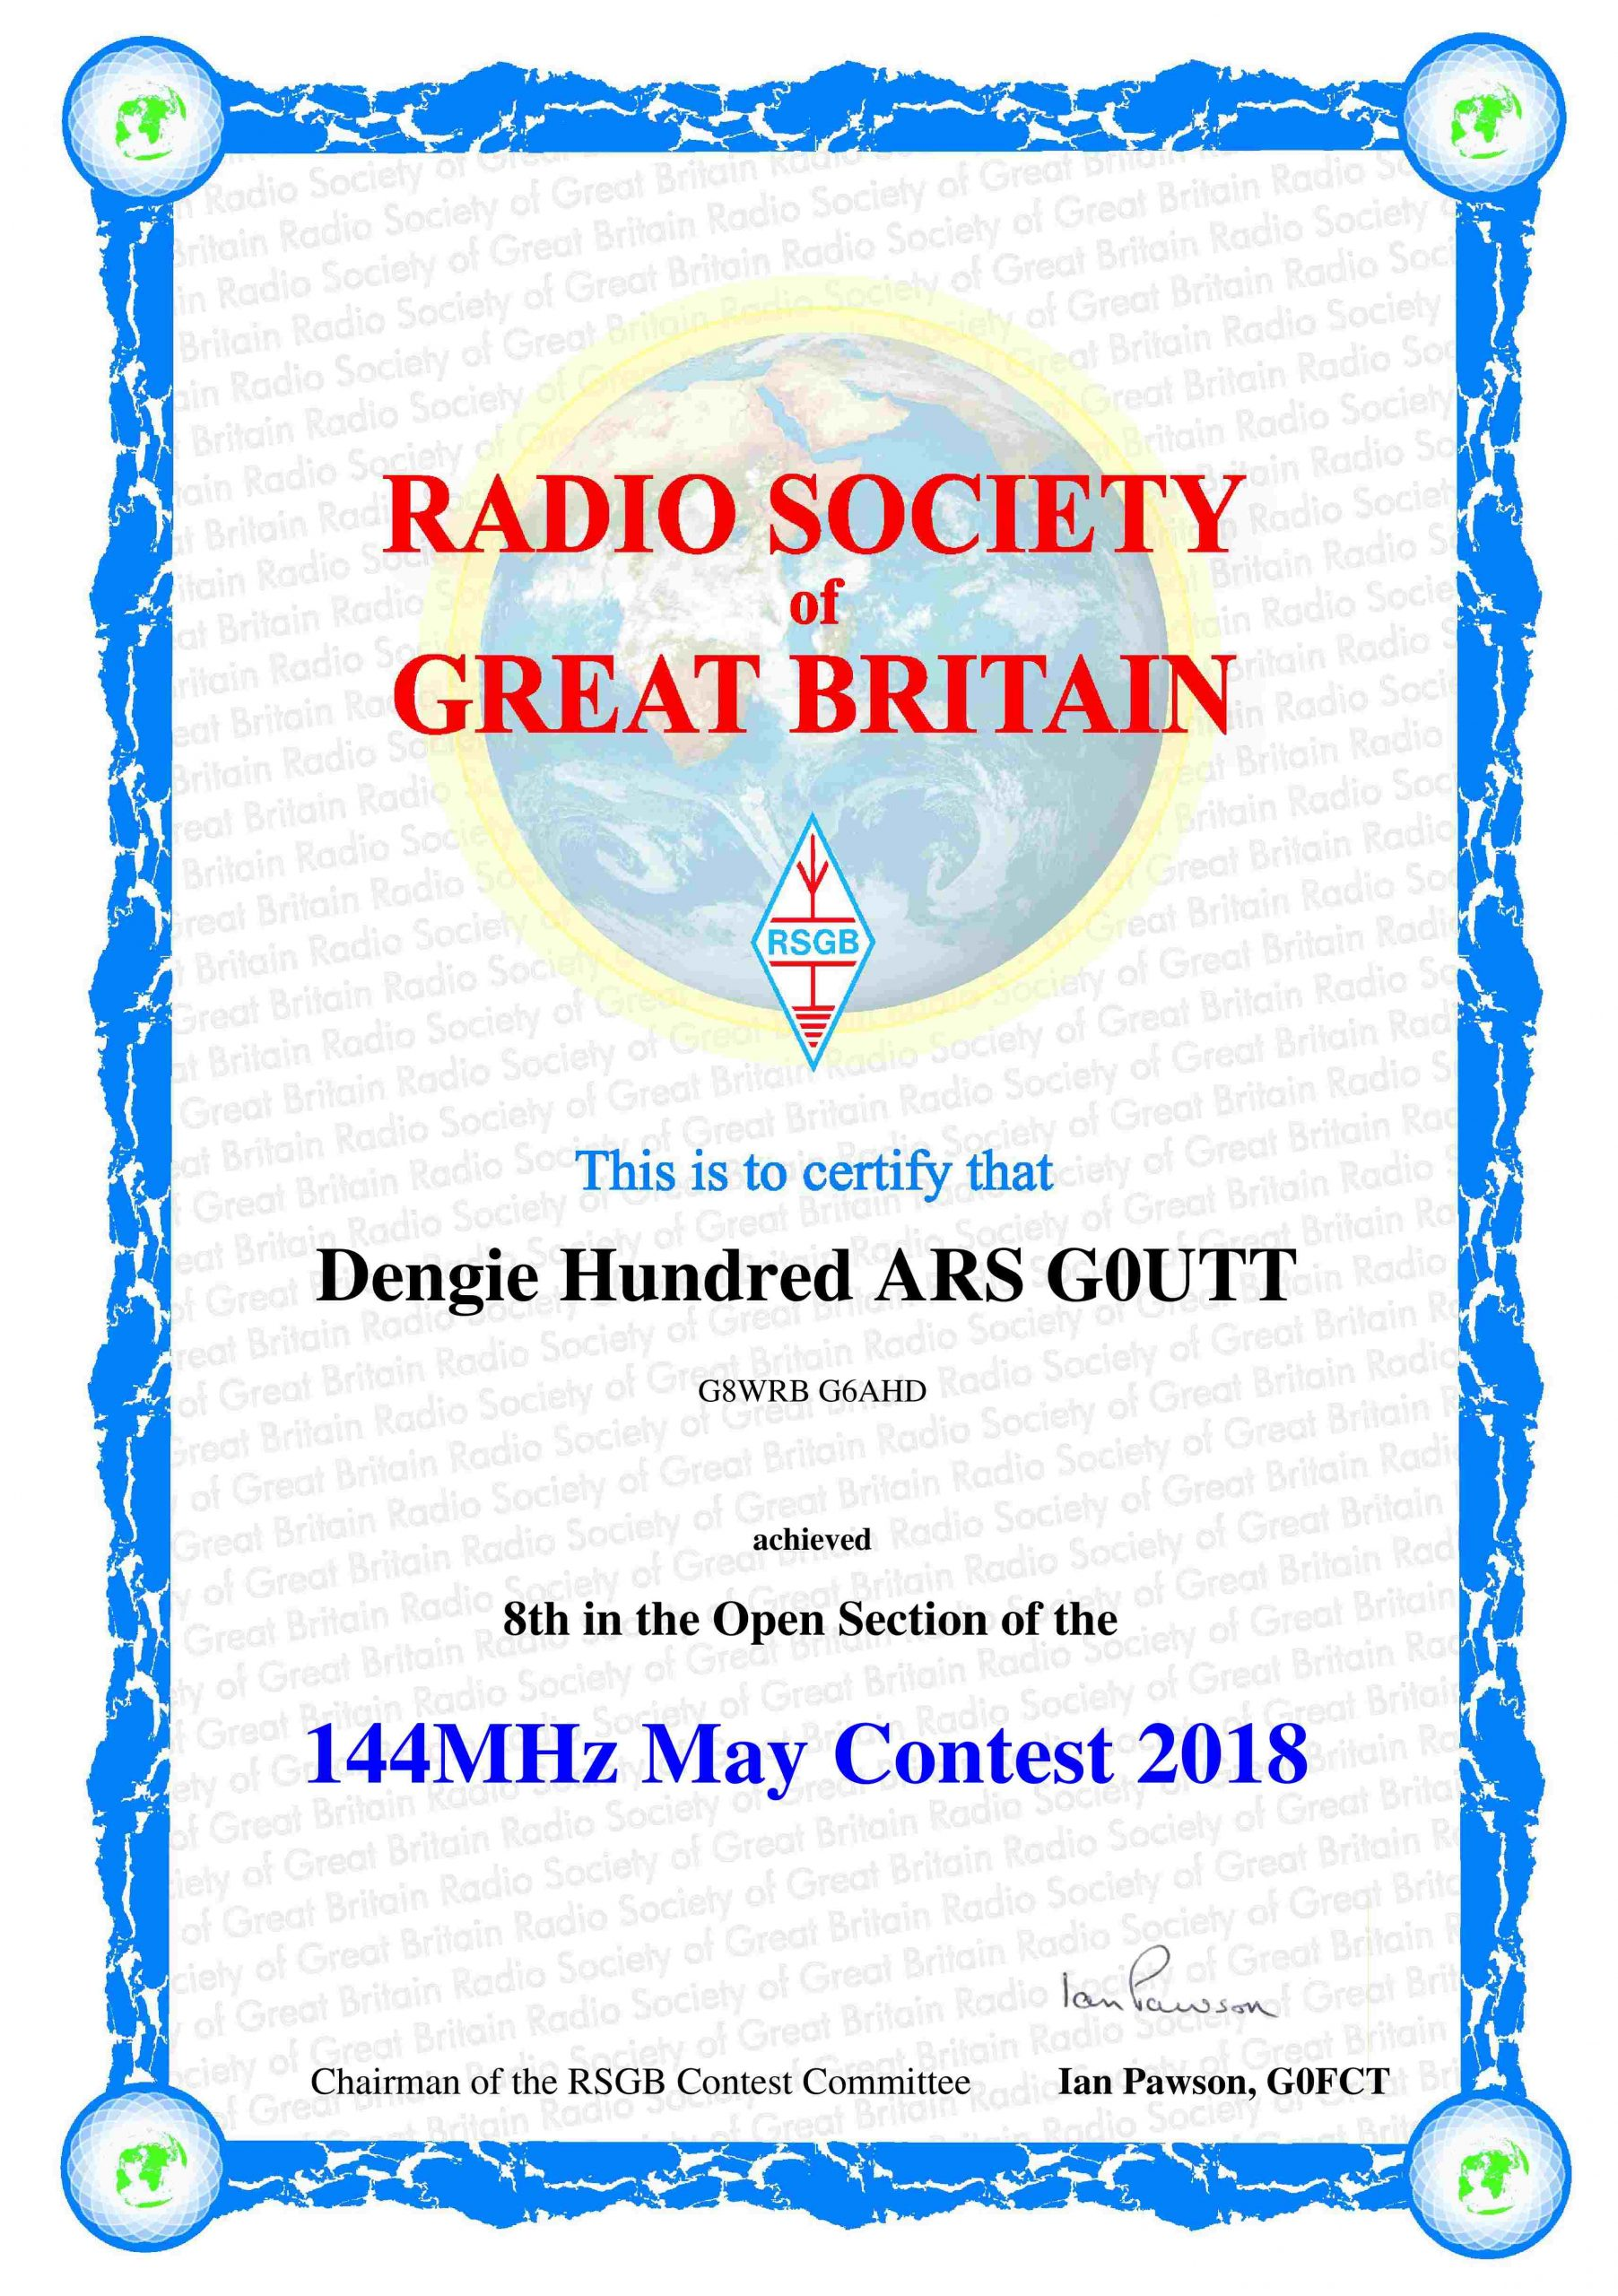 2018 Events At The Dengie Hundred Amateur Radio Society